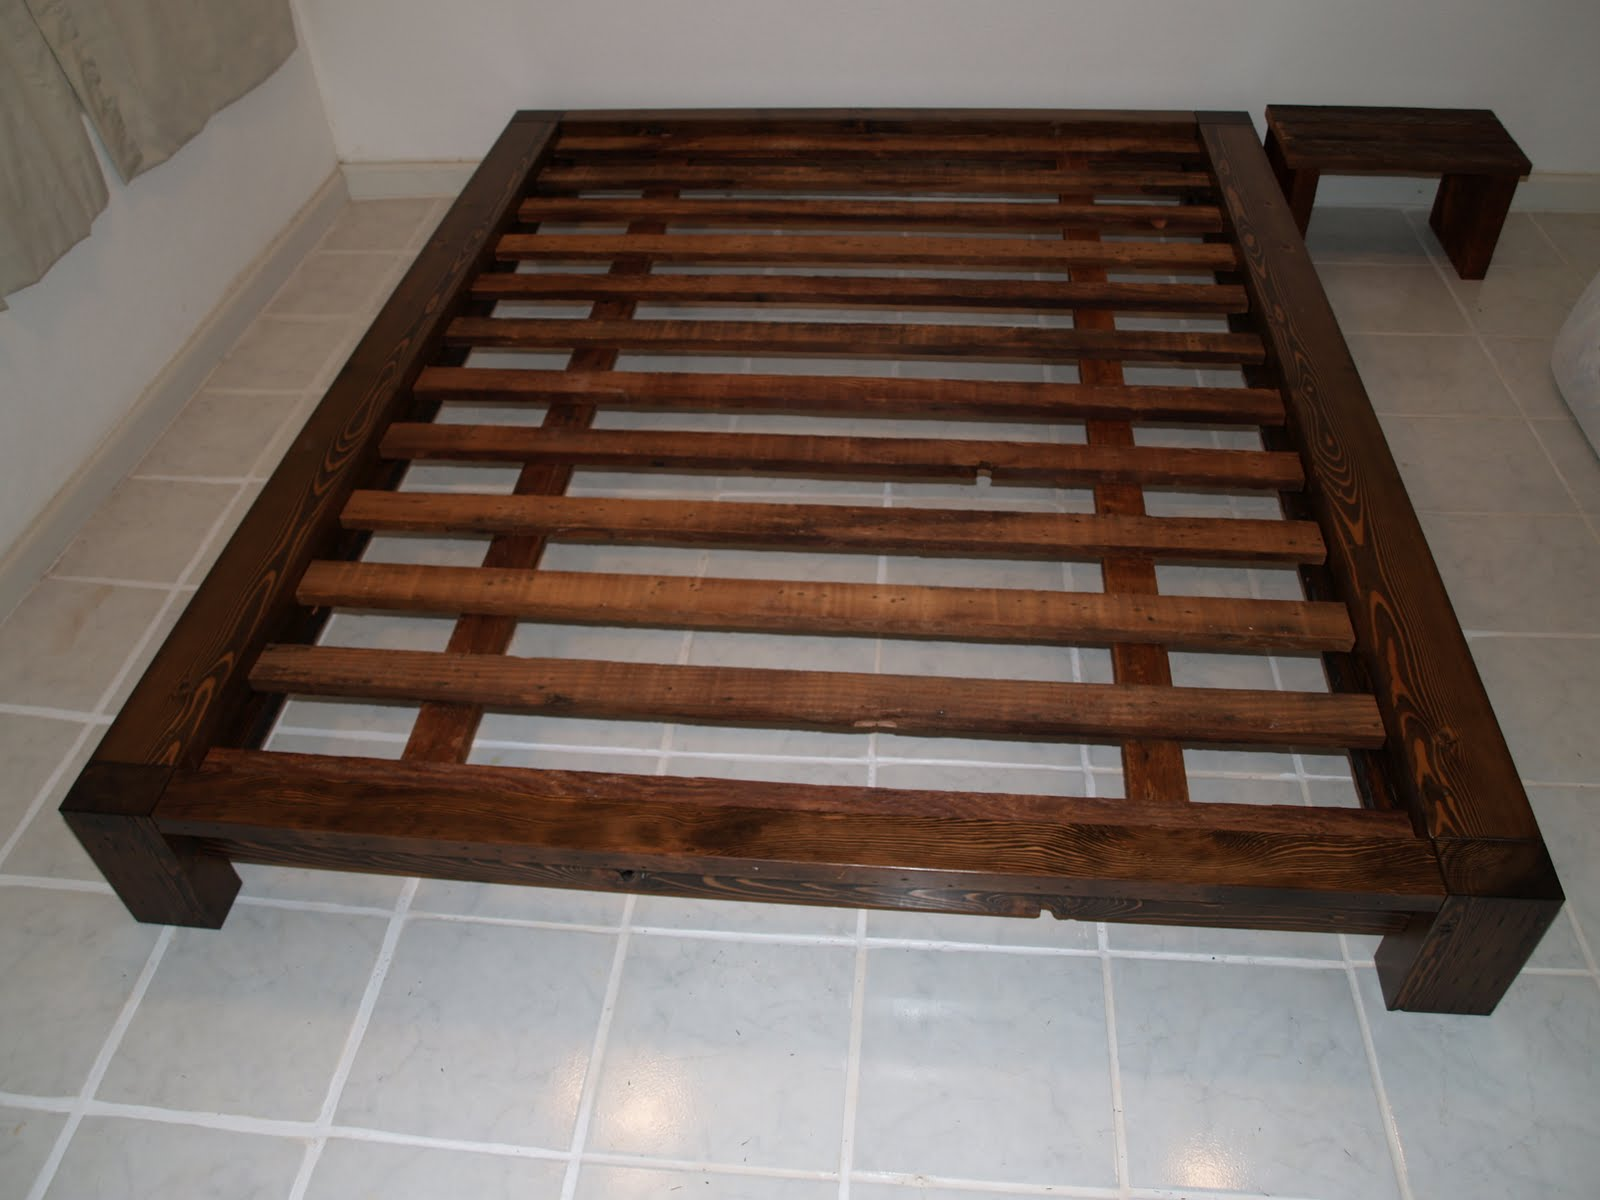 FORWARD THINKING FURNITURE: Queen size bed frame